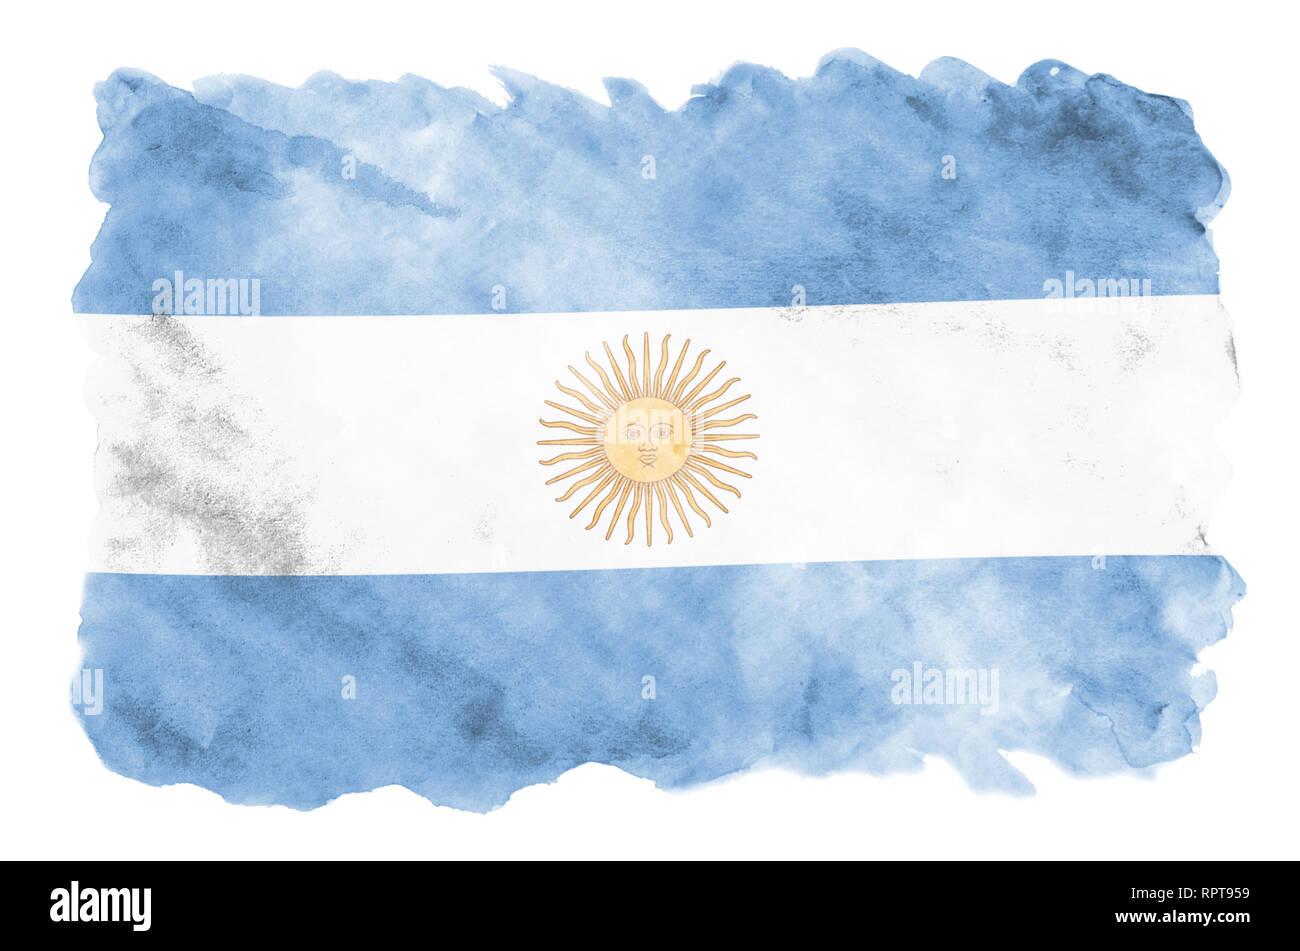 Argentina Flag Is Depicted In Liquid Watercolor Style Isolated On White Background Careless Paint Shading With Image Of National Flag Independence Stock Photo Alamy